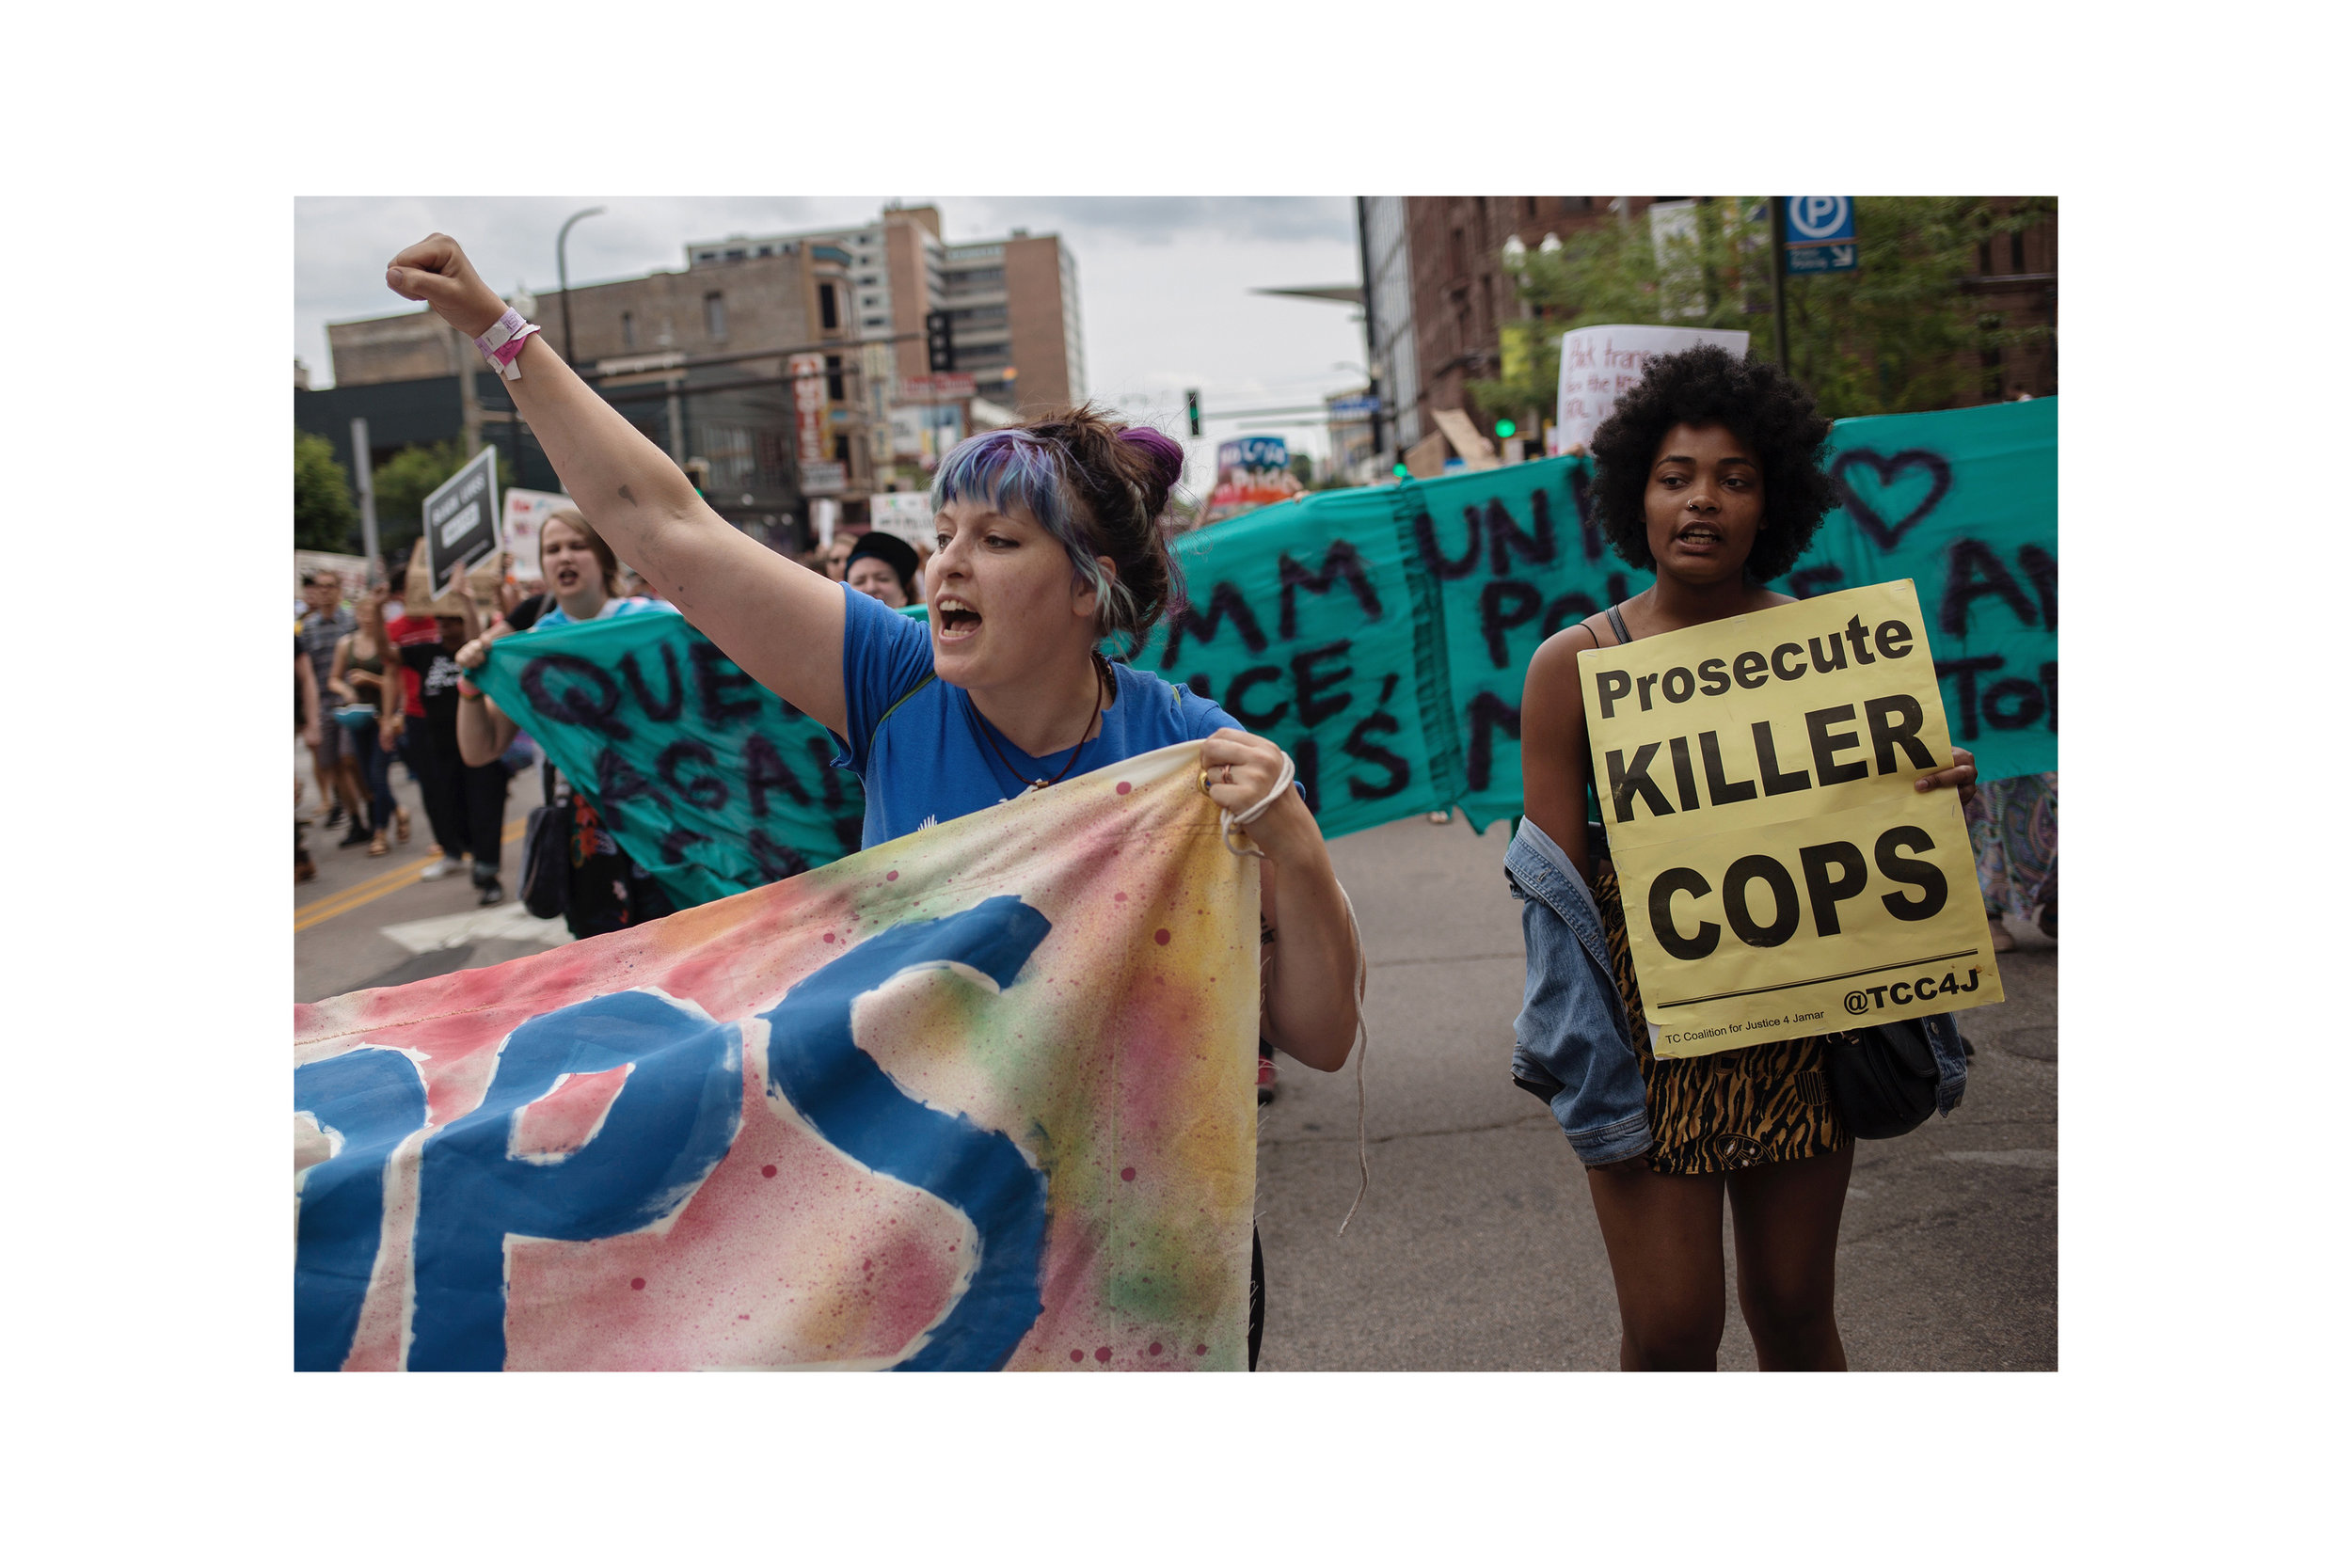 Protestors occupied Hennepin Avenue in downtown Minneapolis on June 24, delaying the start of the Twin Cities Pride Parade by almost two hours. The impassioned demonstrators called from the removal of police presence from Pride events, as well as justice for Thurman J. Blevins, a 31-year-old man who had been shot and killed by police in north Minneapolis the night before. Reactions from the crowd ranged from passive silence, to signs of solidarity, to booing. For MPR News.